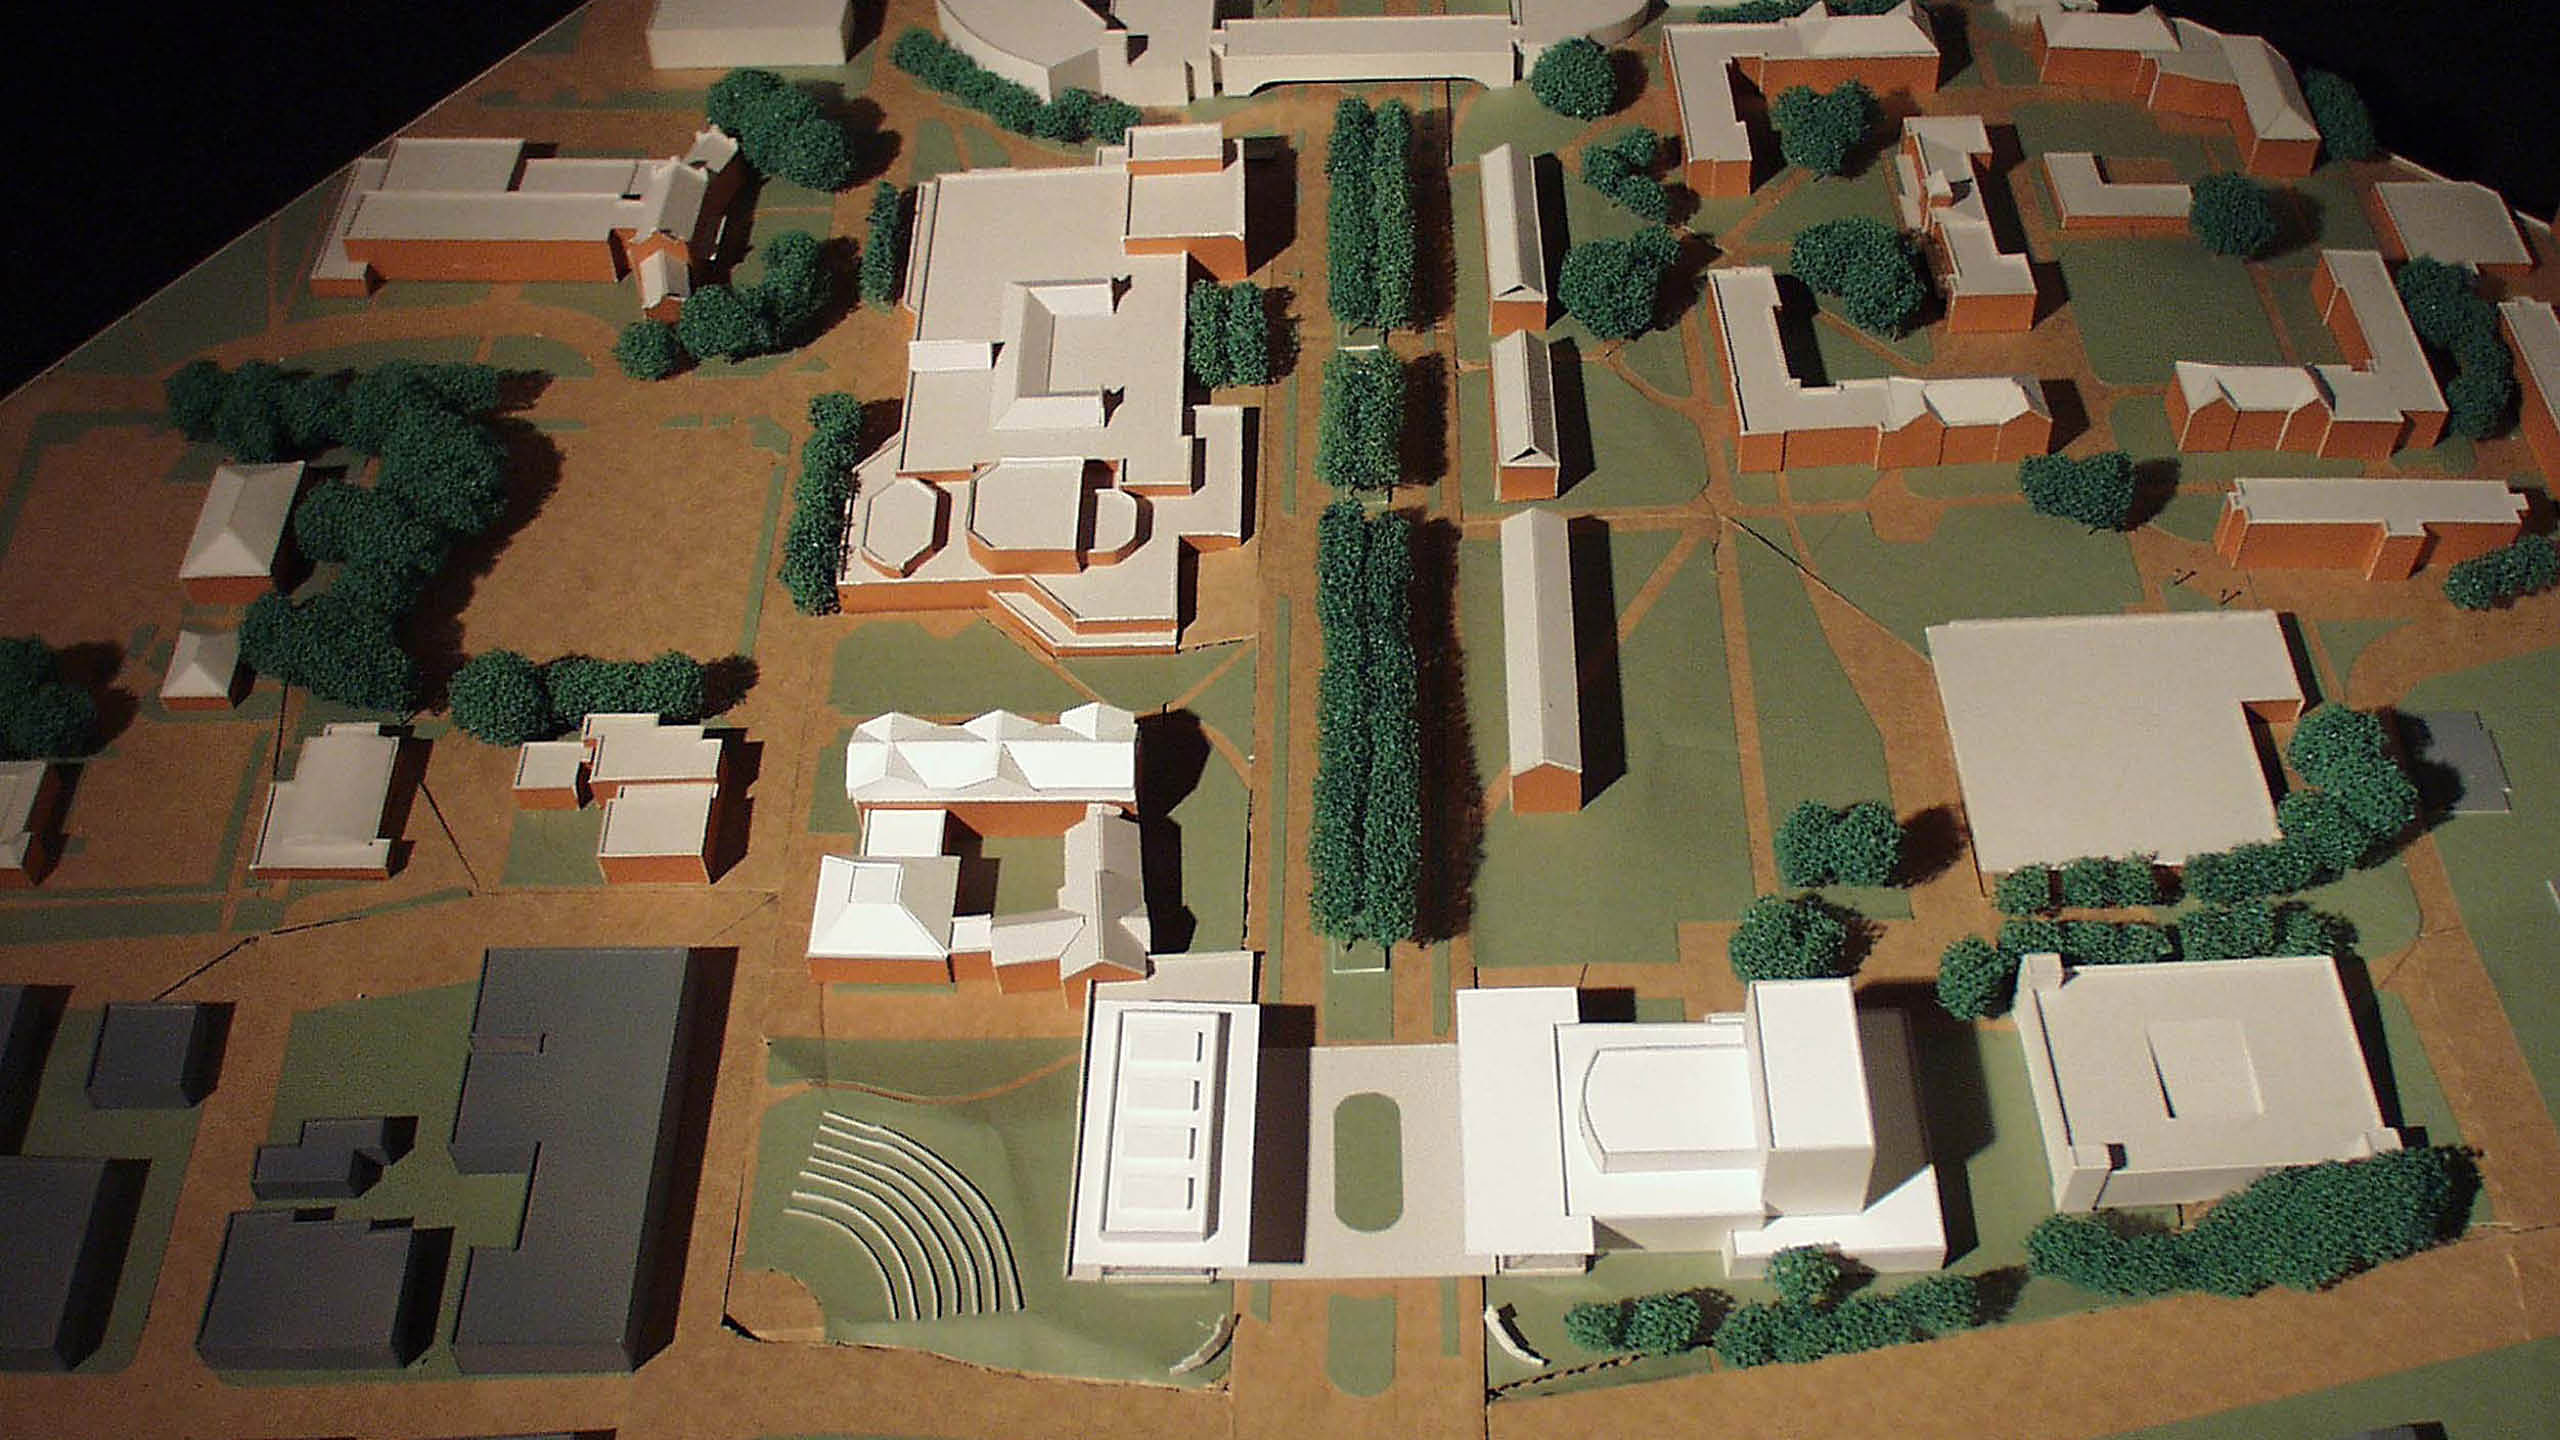 Arts Precinct Plan – Virginia Tech / image 6